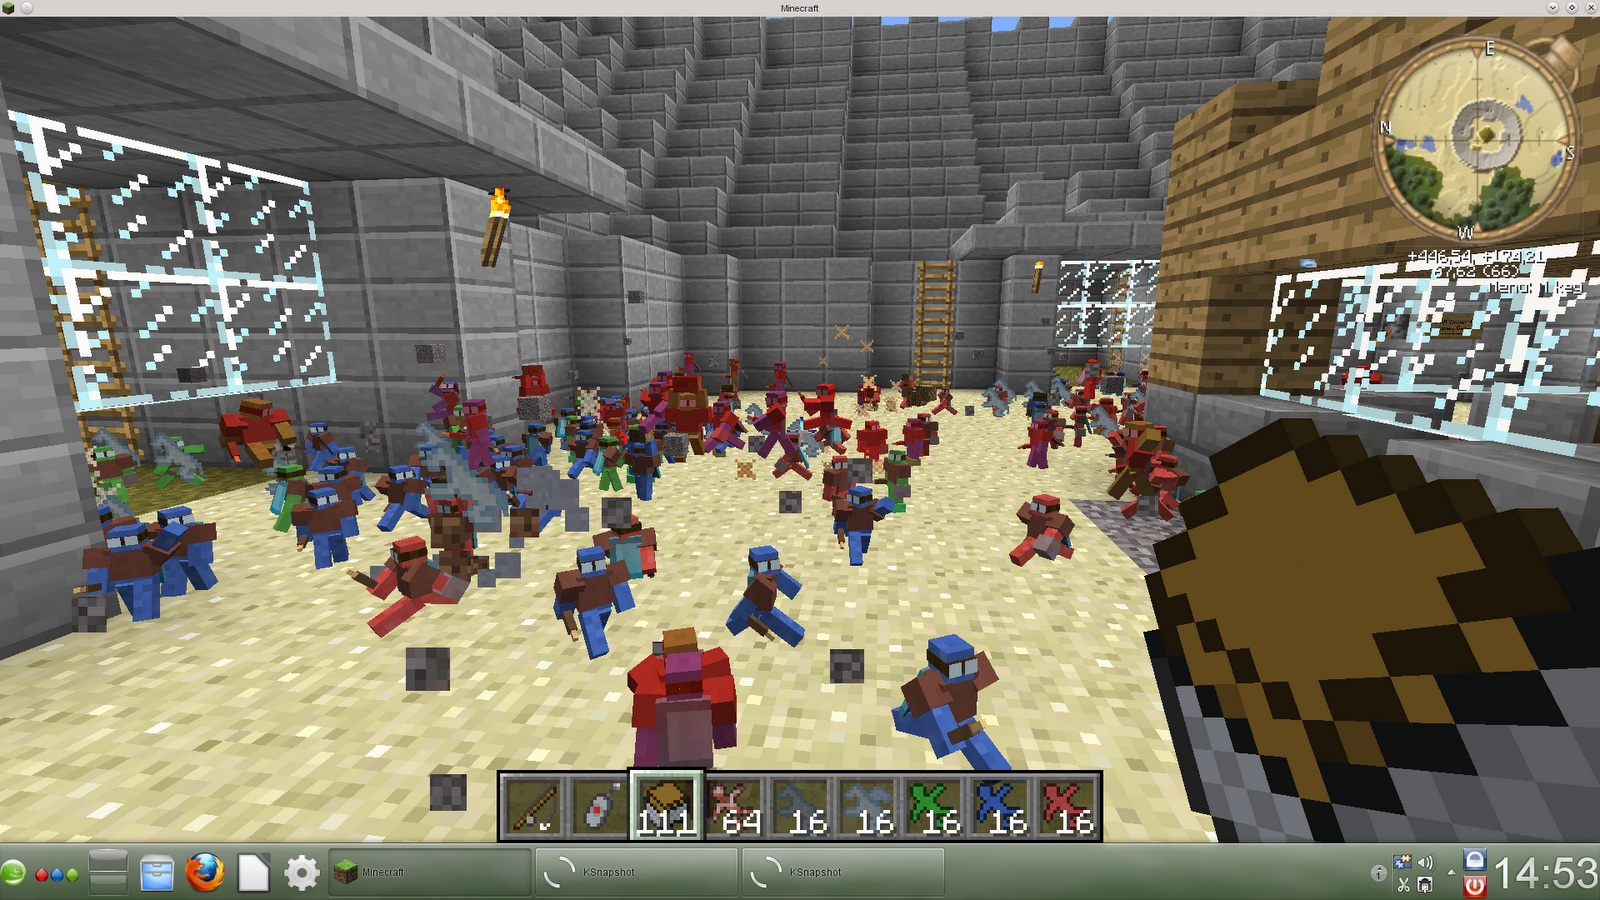 Minecraft Custom Maps and Skins: the Clay Soldier Arena